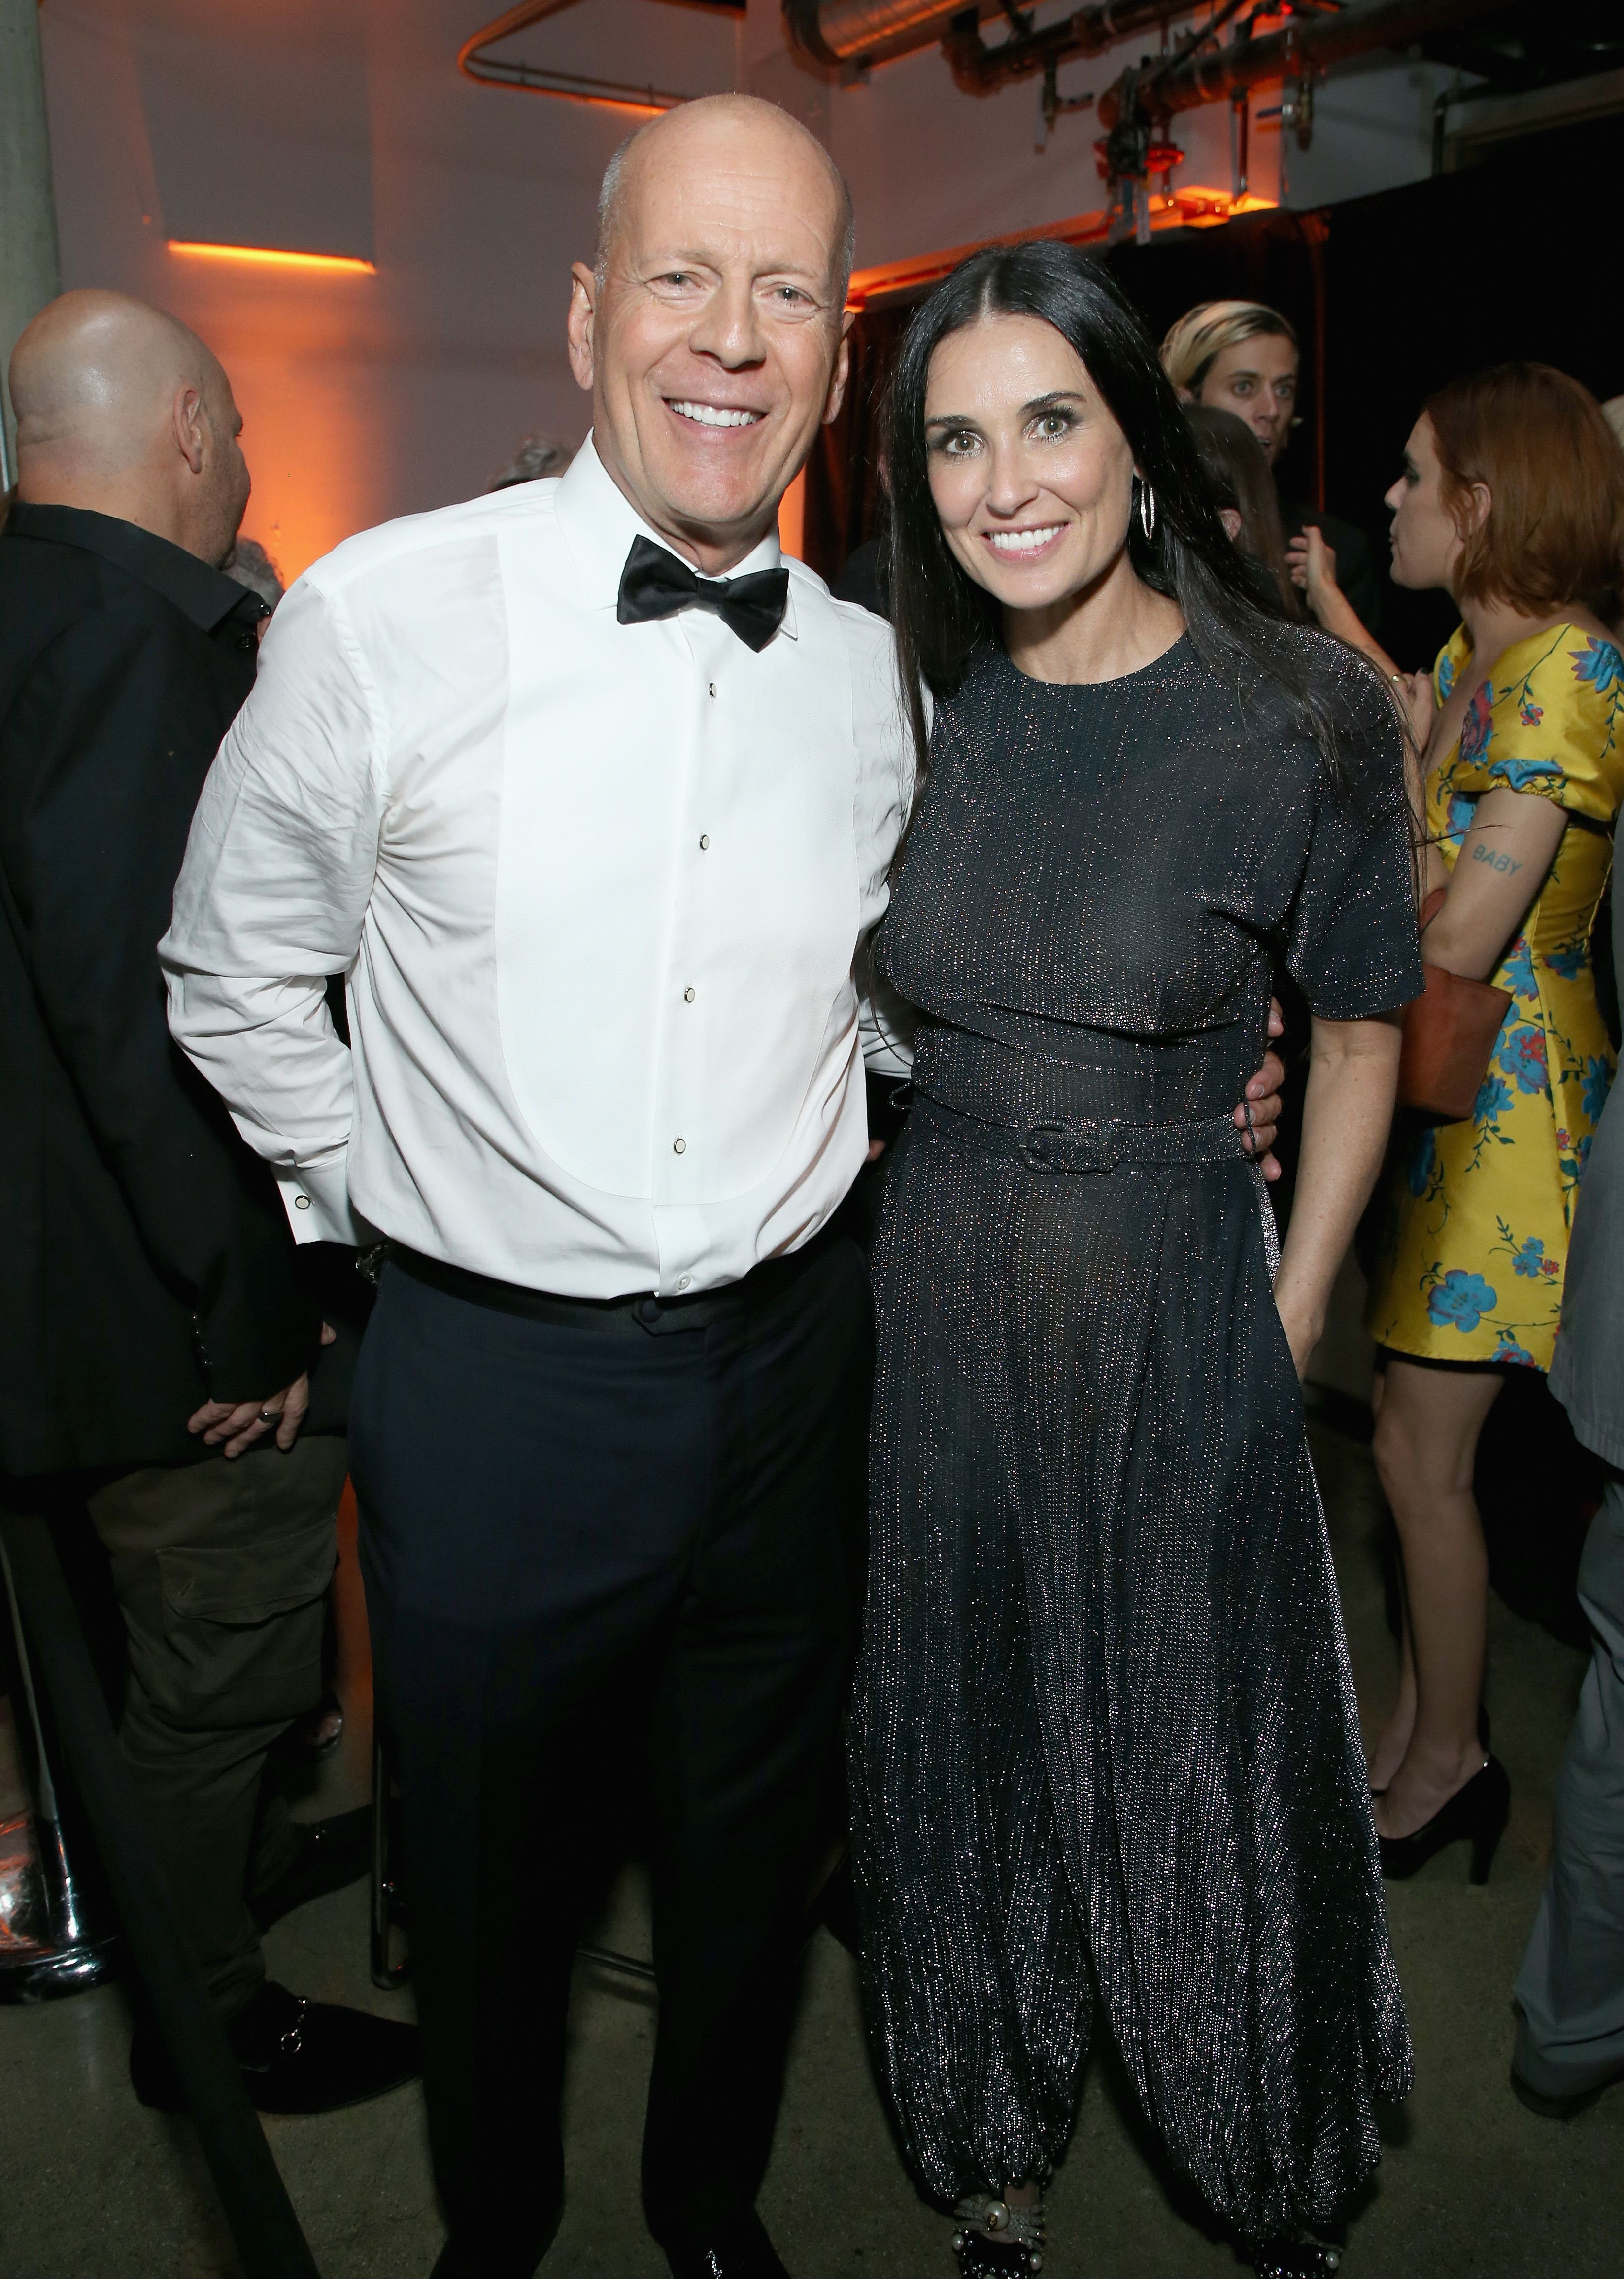 Bruce Willis and Demi Moore at the after party for the Comedy Central Roast of Bruce Willis on July 14, 2018 | Photo: Getty Images